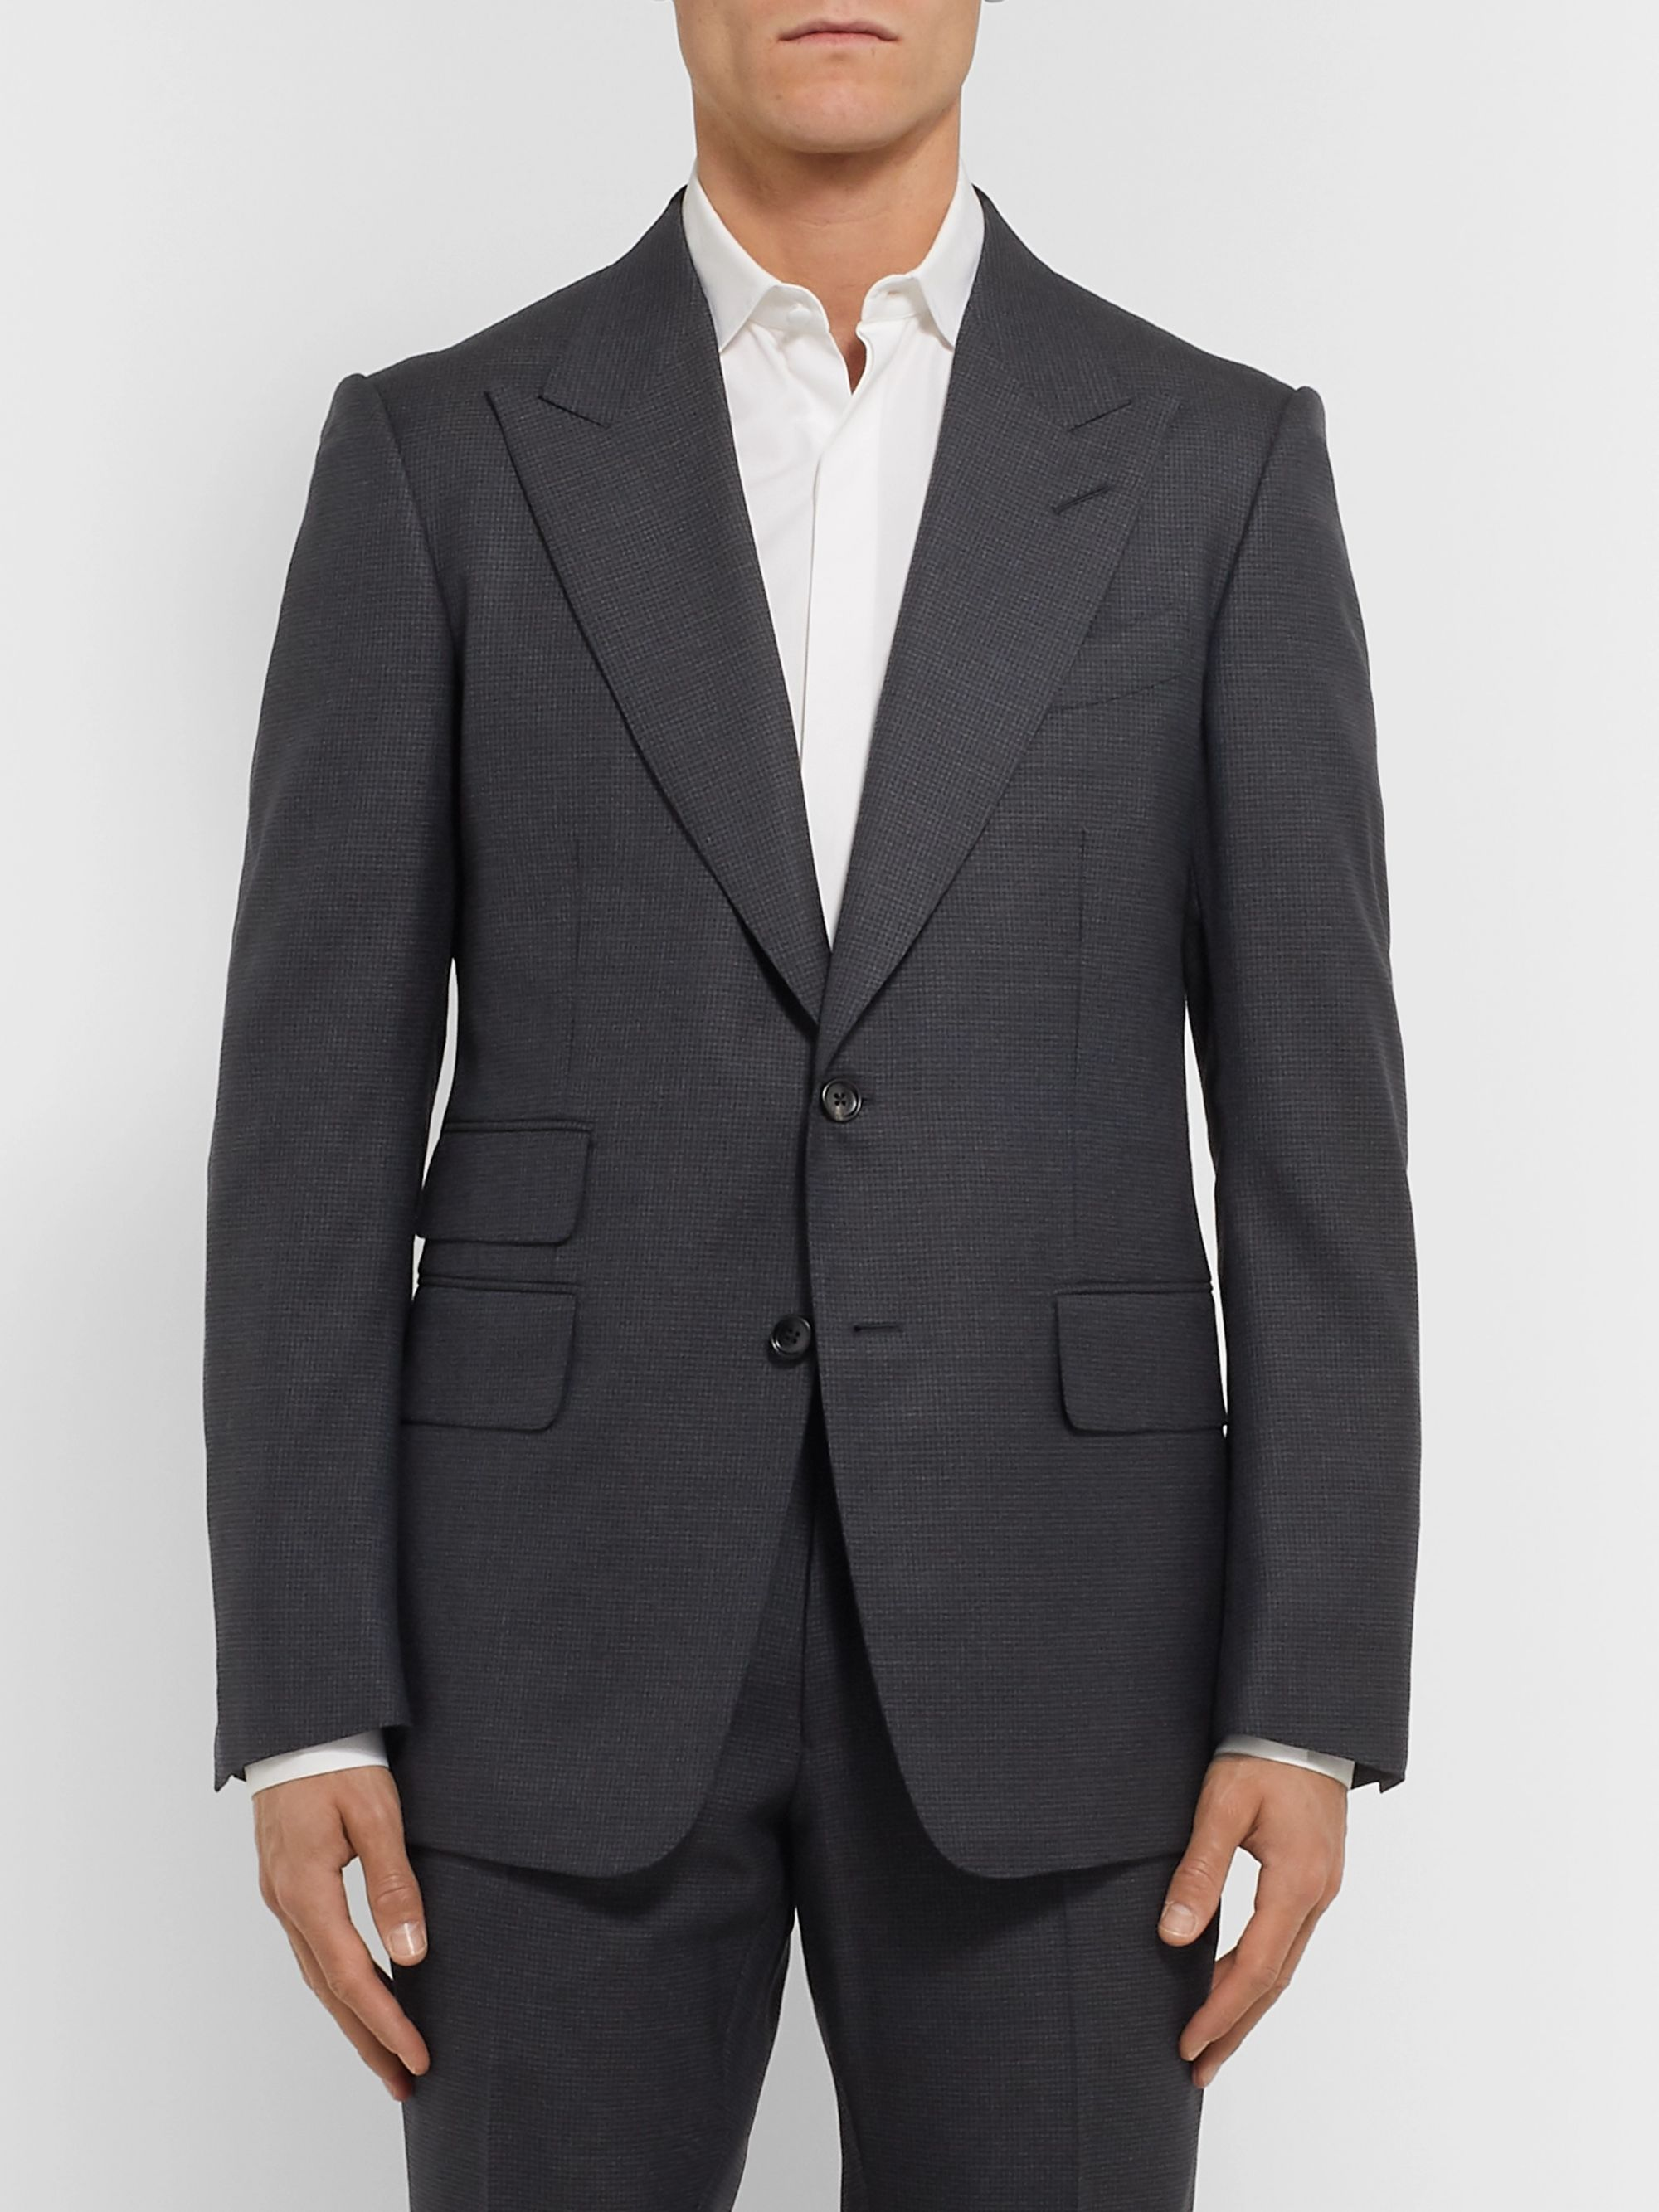 TOM FORD Navy Shelton Slim-Fit Puppytooth Wool Suit Jacket